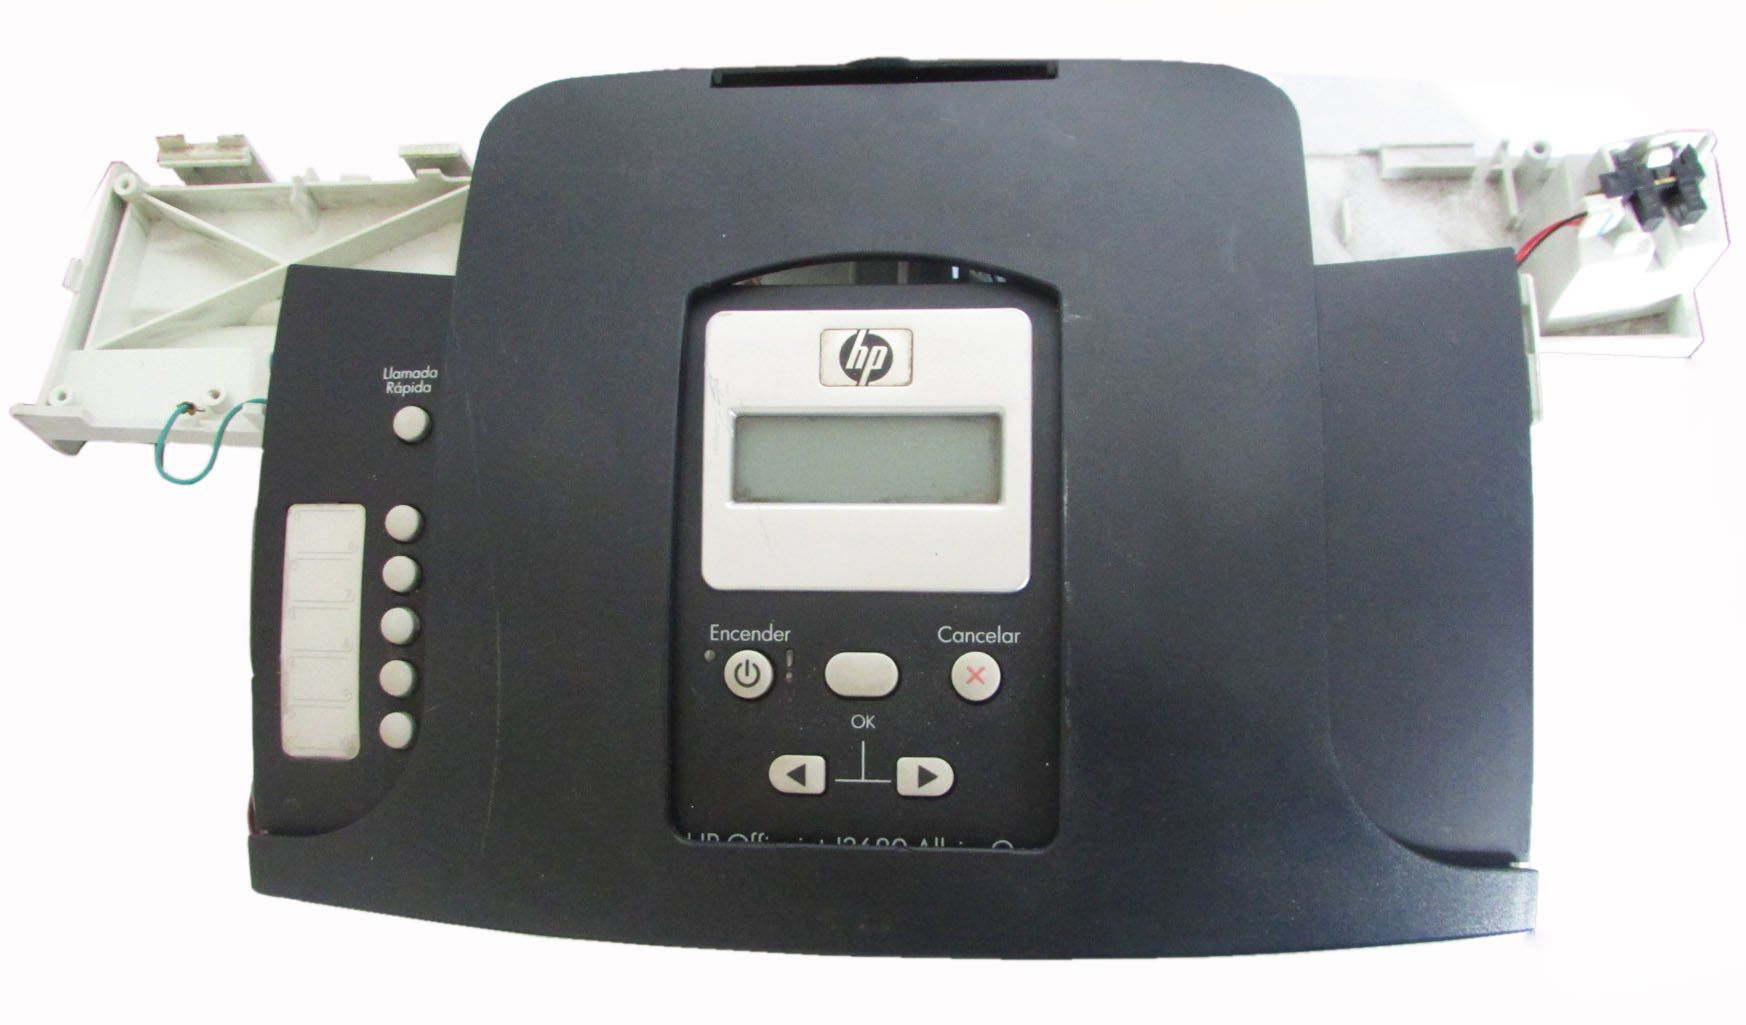 Scanner Impressora Hp Officejet J3680 (semi novo)